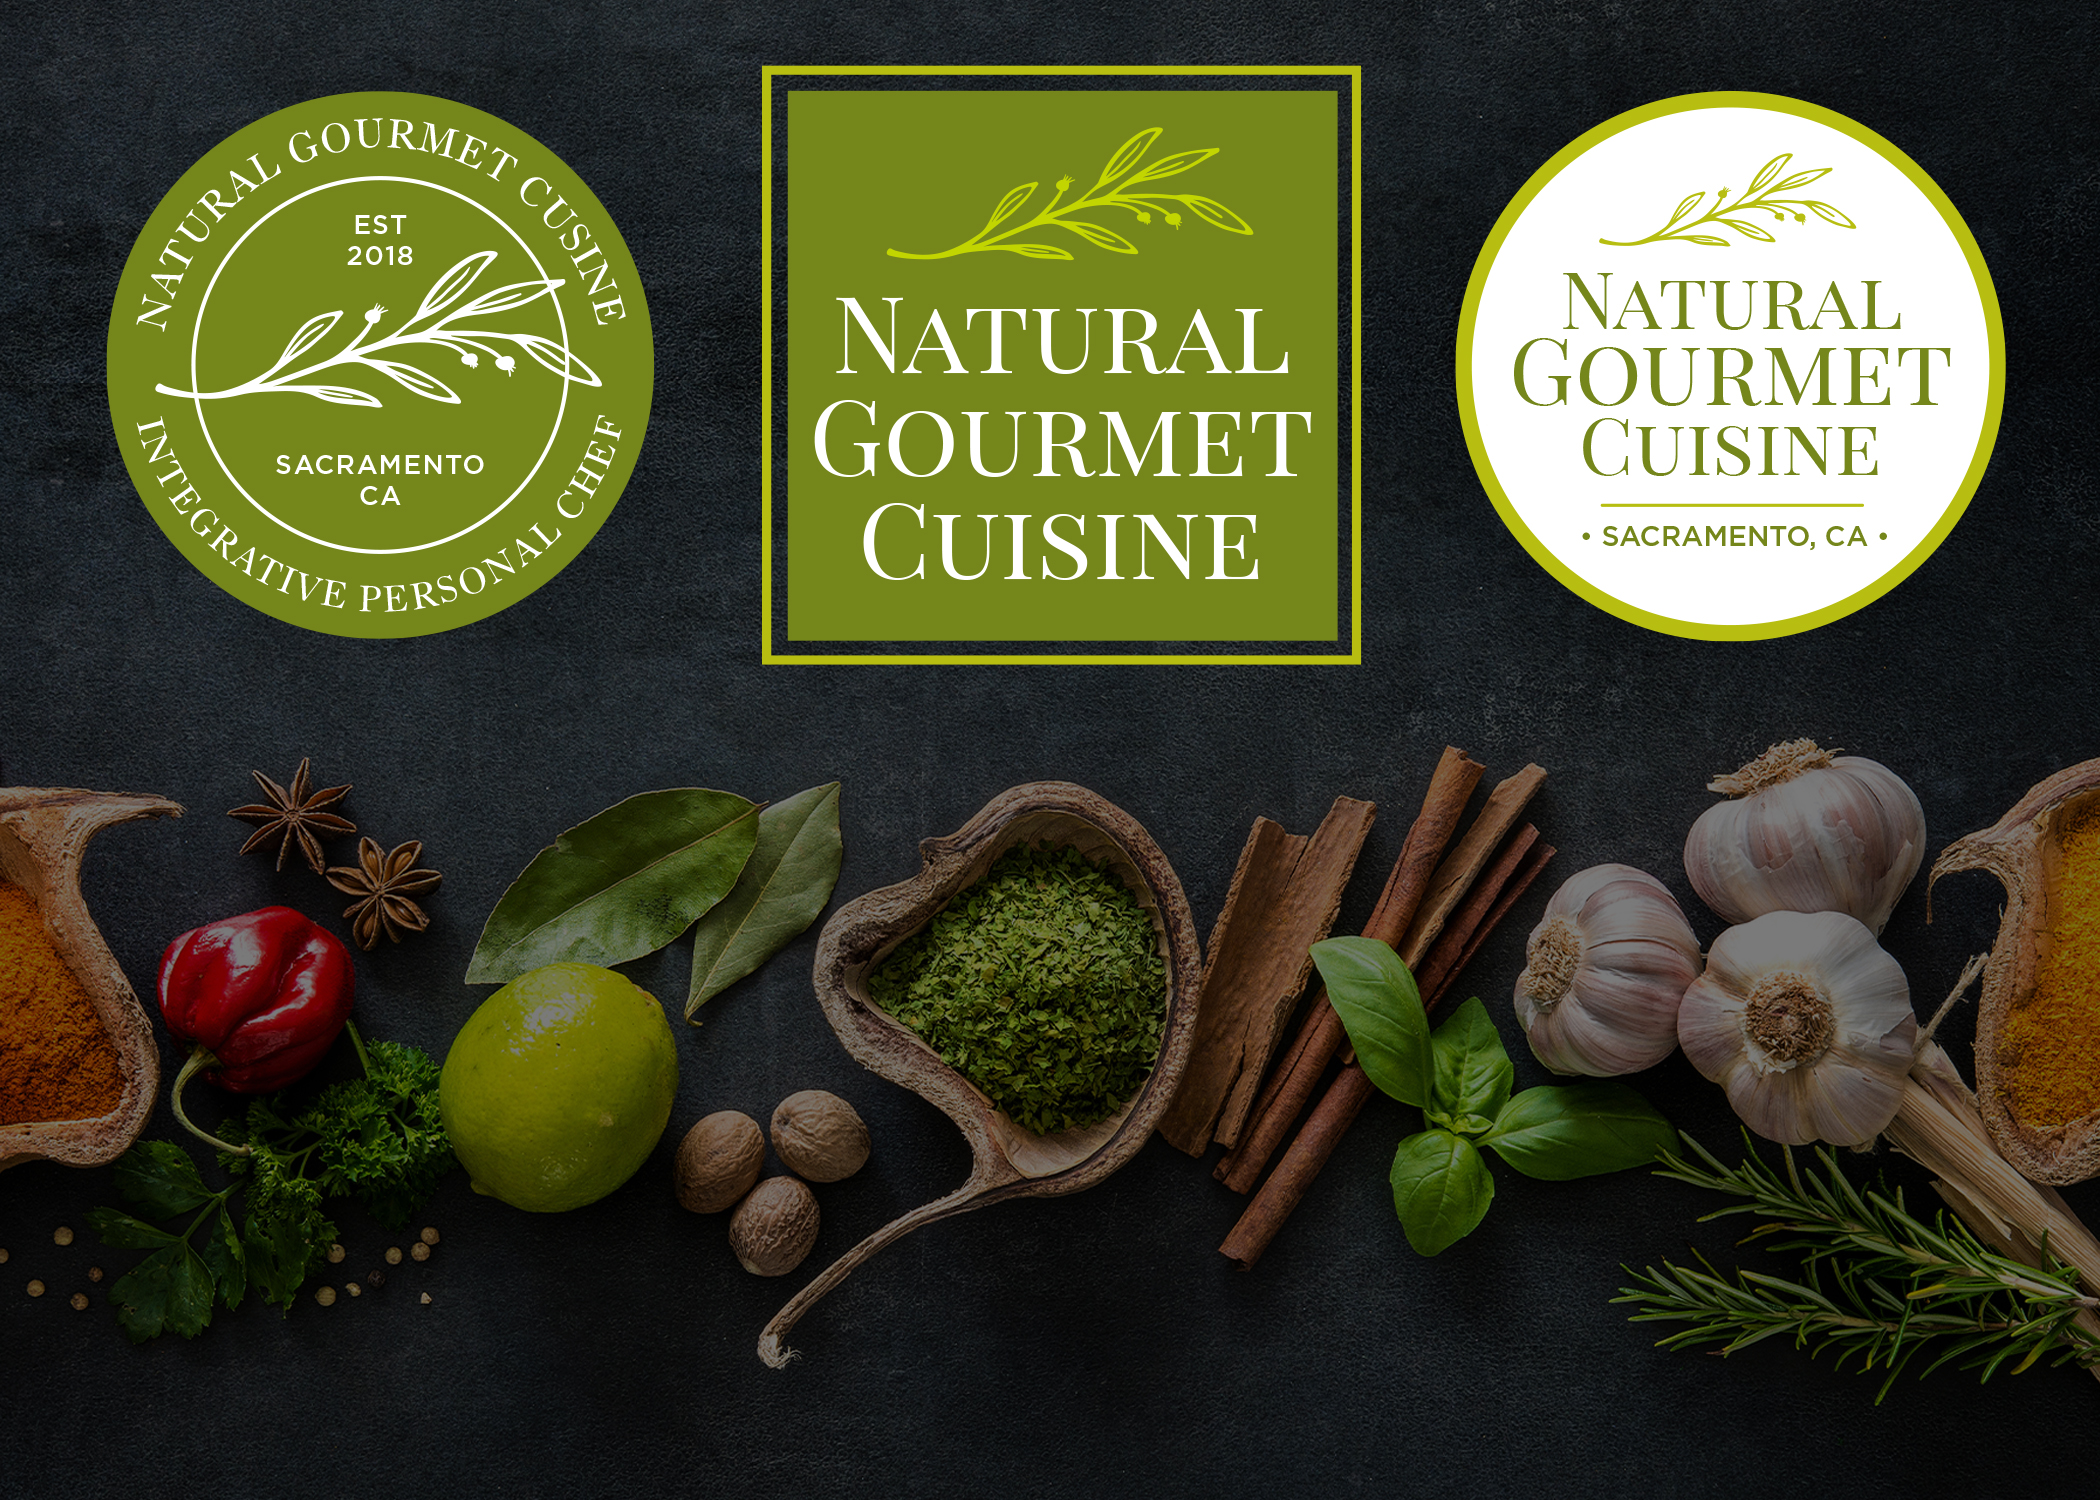 Why not provide more than one logo lockup choice? The middle one is the main one, but the others can be used as labels for pre-packaged meals.